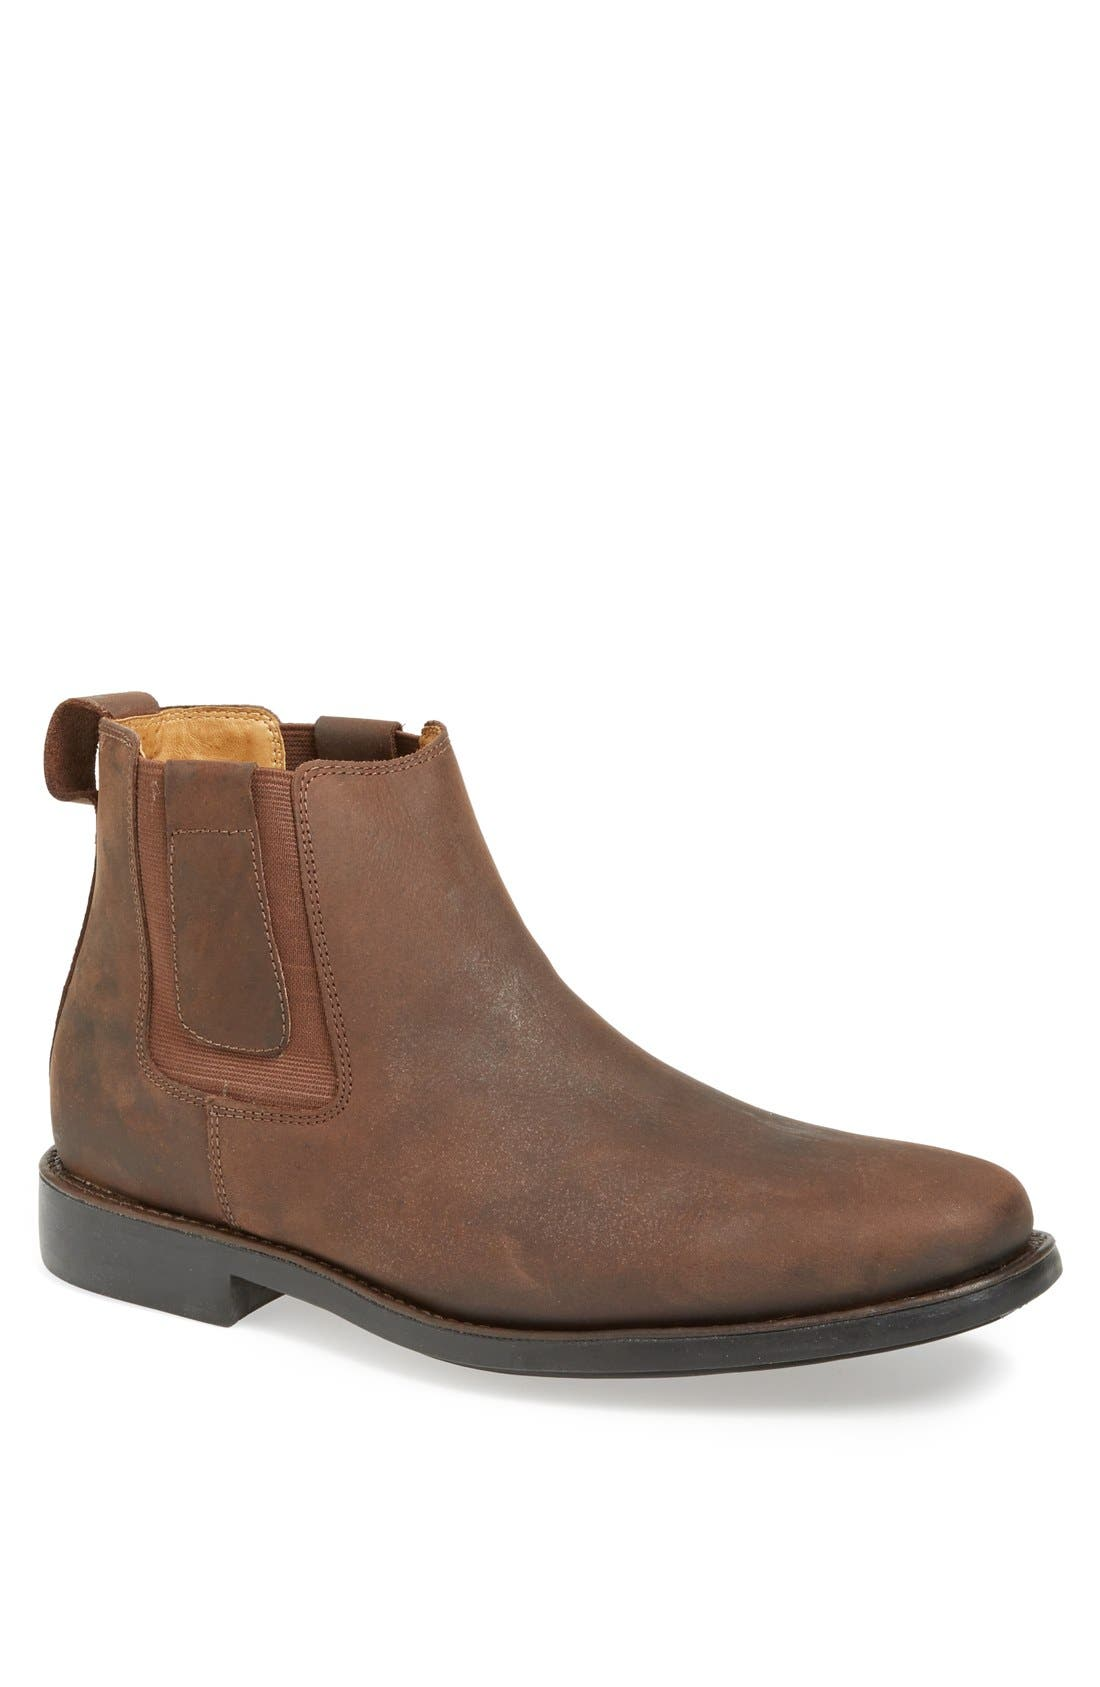 Anatomic & Co Natal Chelsea Boot (Men)